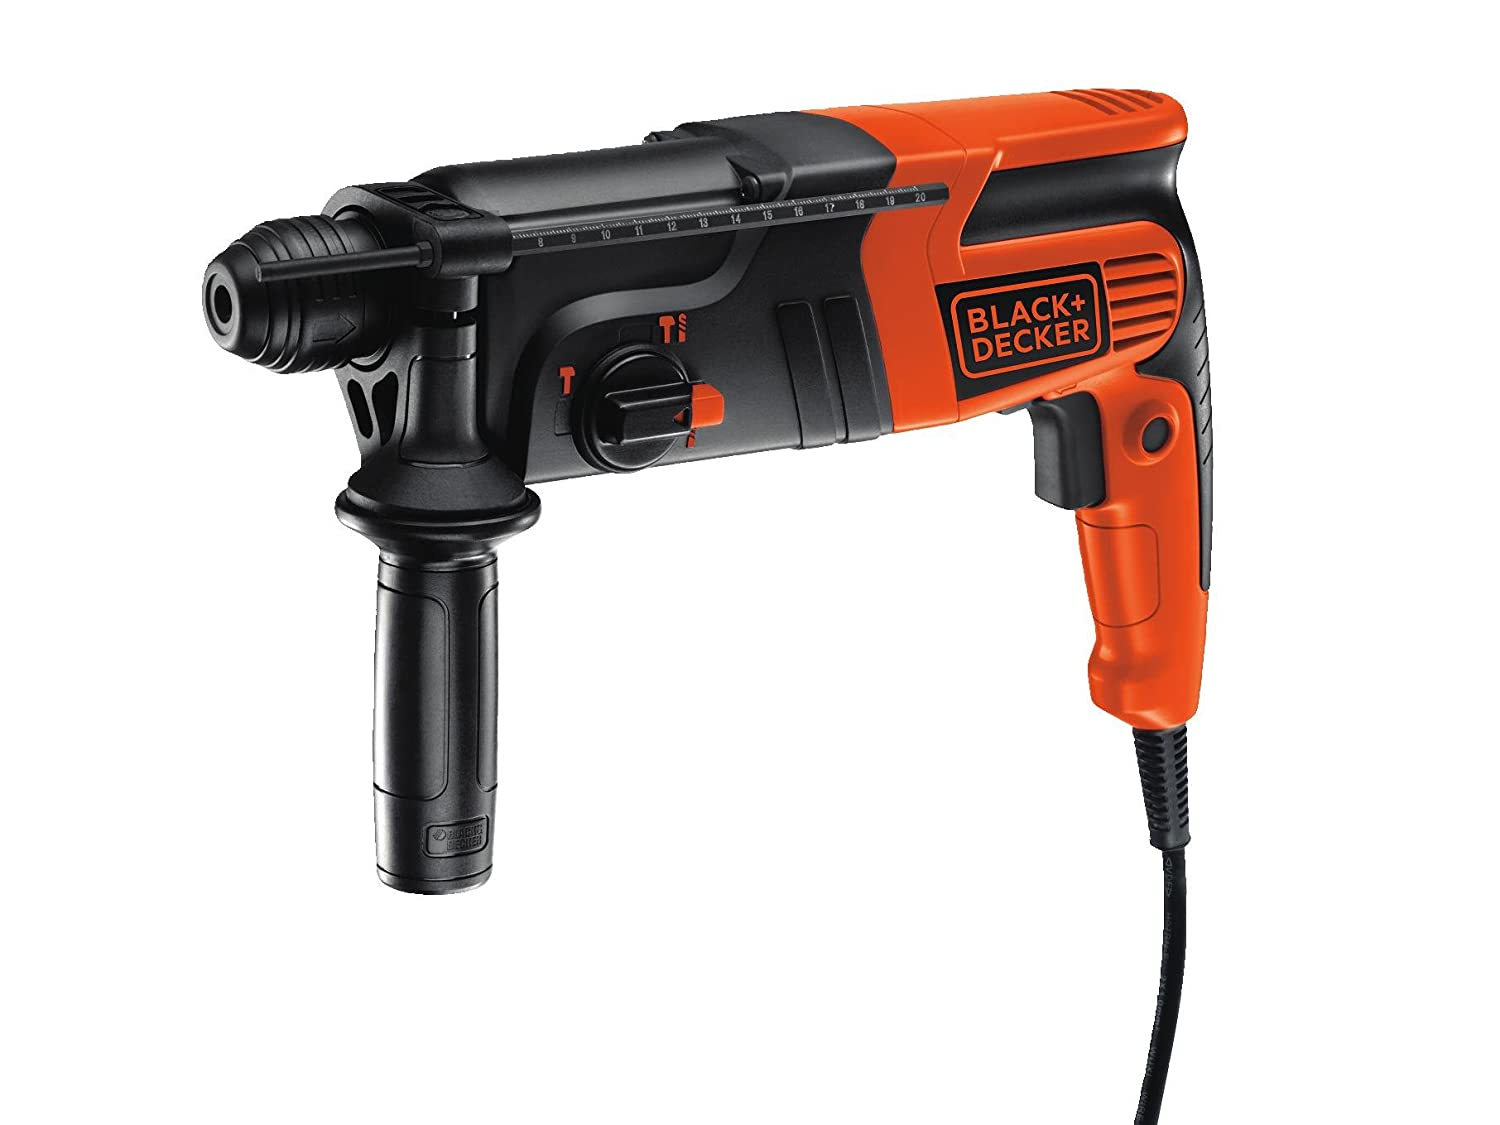 Black + Decker KD885KC Perforateur pneumatique 550 W Stanley Black & Decker France KD885KC-QS